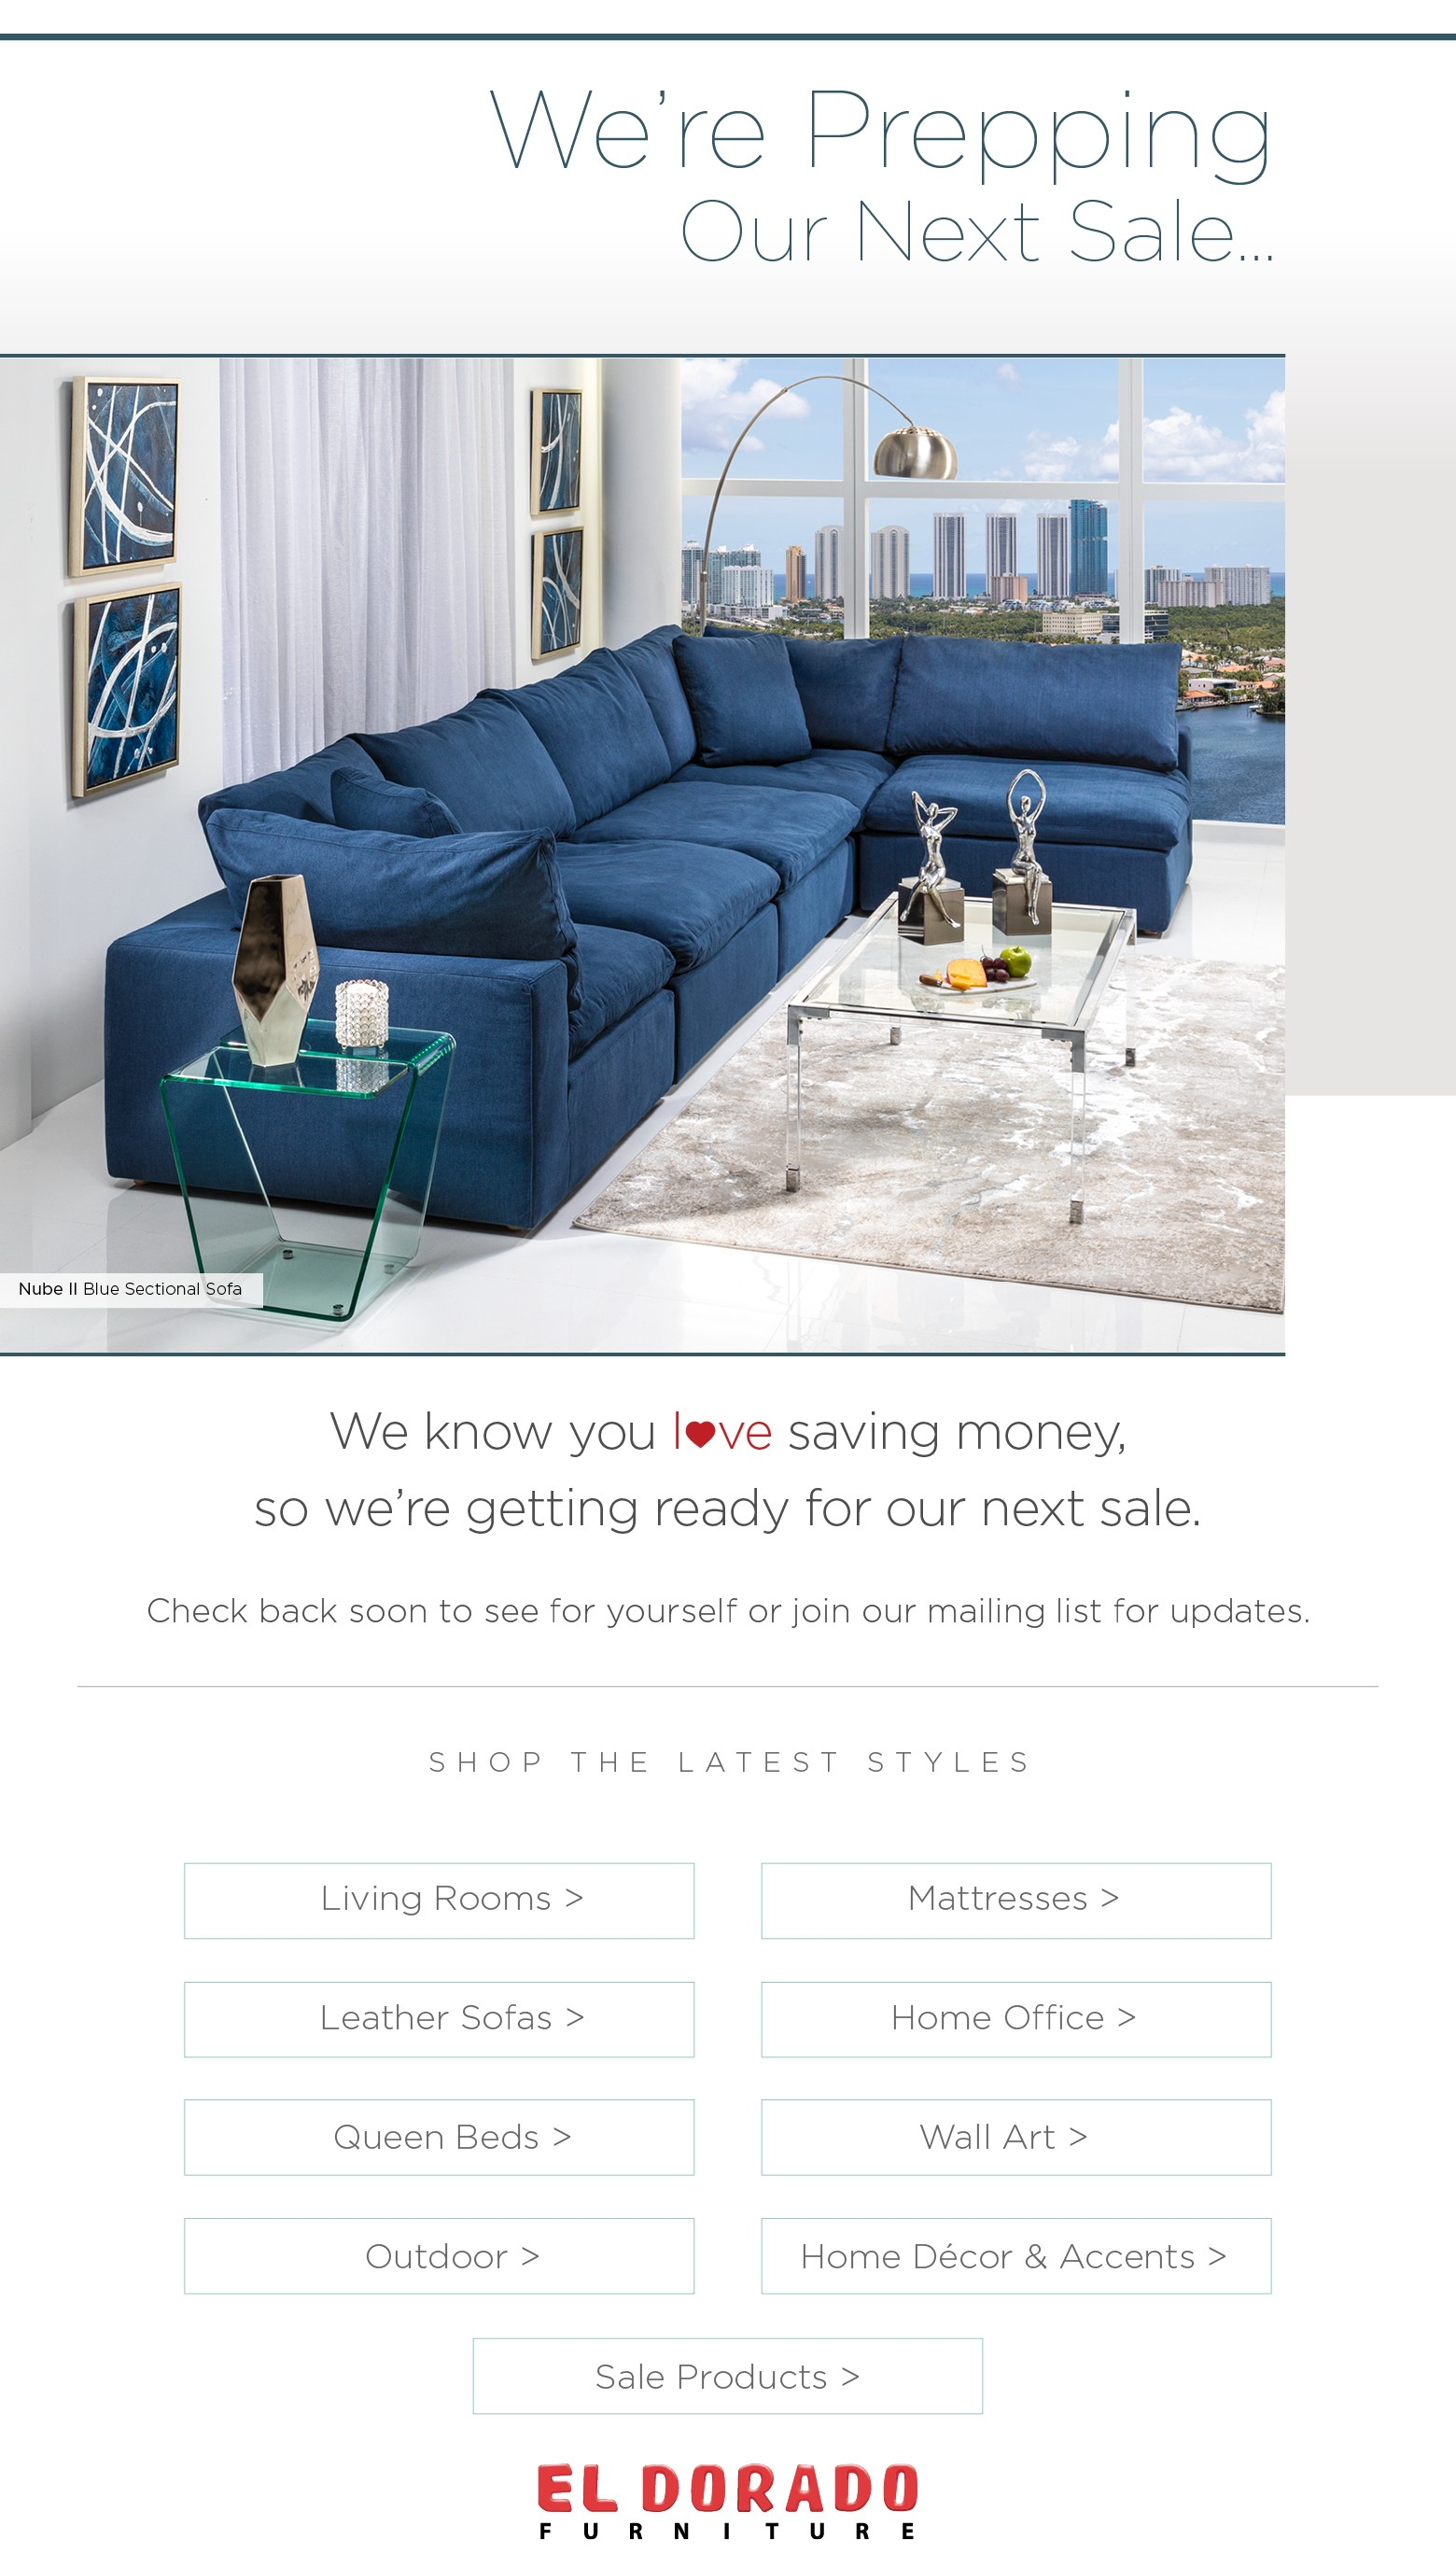 We're Prepping Our Next Sale… We know you love saving money,so we're getting ready for our next sale. Check back soon to see for yourself or join our mailing list for updates. Shop the Latest Styles Living Rooms >Mattresses > Leather Sofas >Home Office > Queen Beds > Wall Art > Outdoor >Home Décor & Accents > Sale Products >